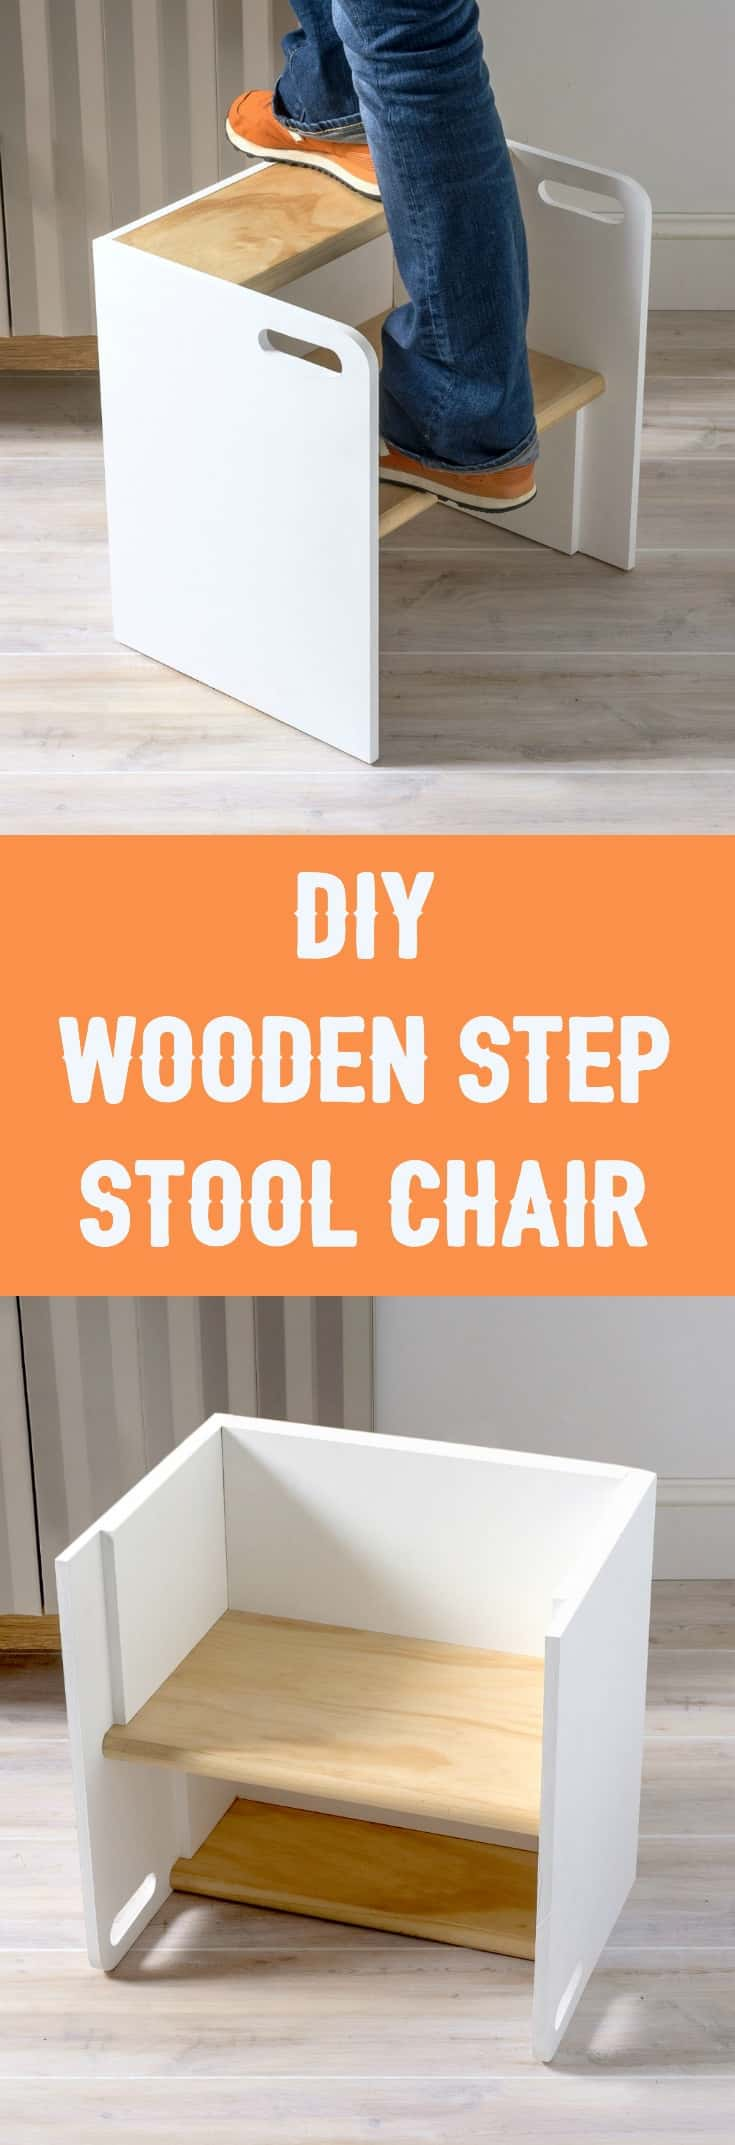 Learn How To Build A Wooden Step Stool That Turns Into A